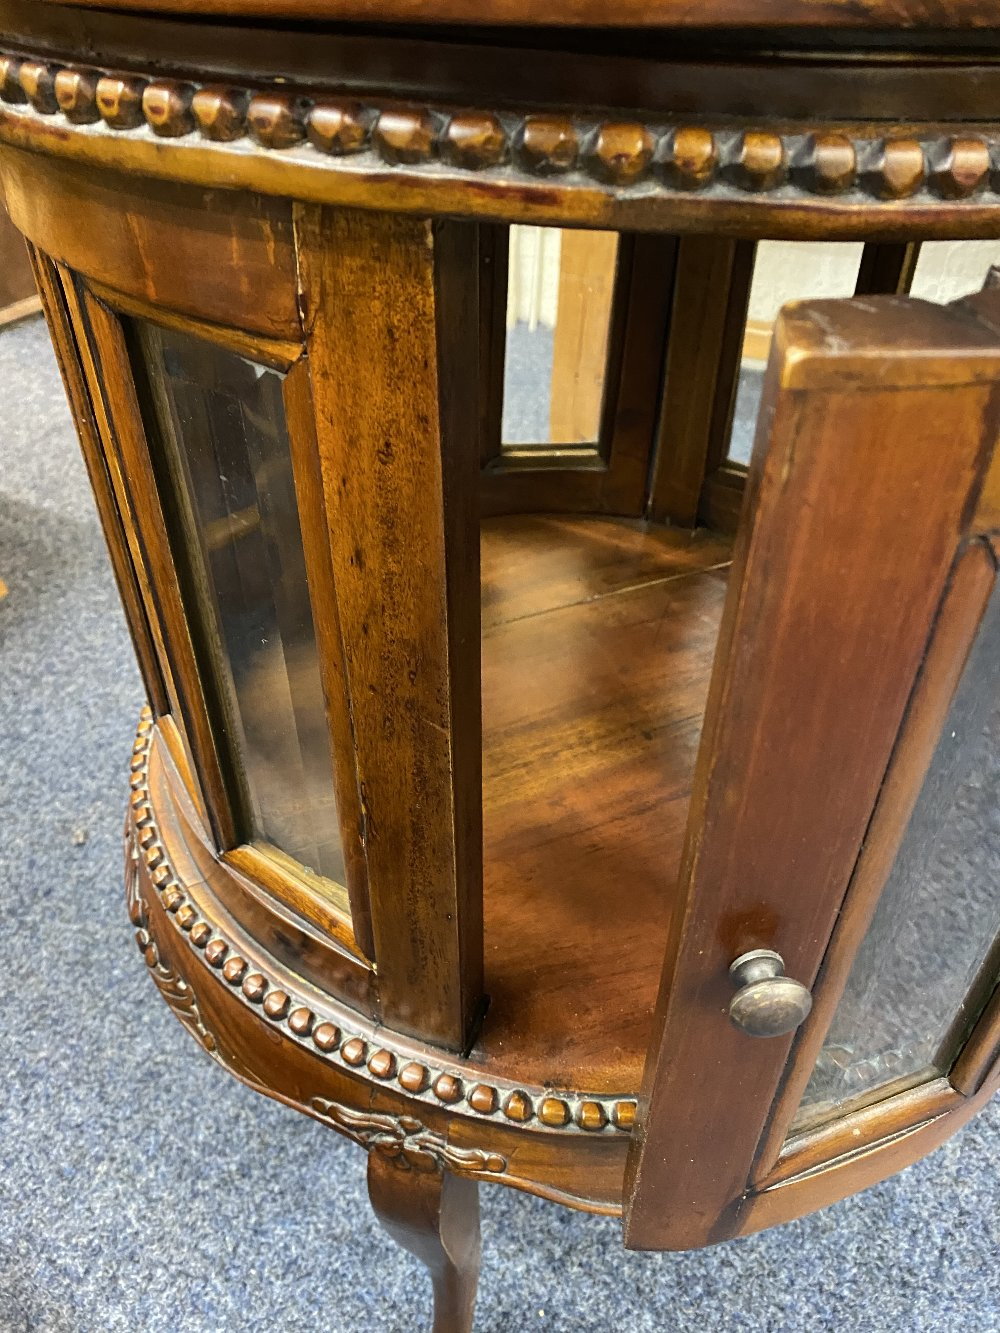 REPRODUCTION HARDWOOD DRUM TYPE DRINKS CABINET having a lift-off circular tray top, beaded and - Image 4 of 4